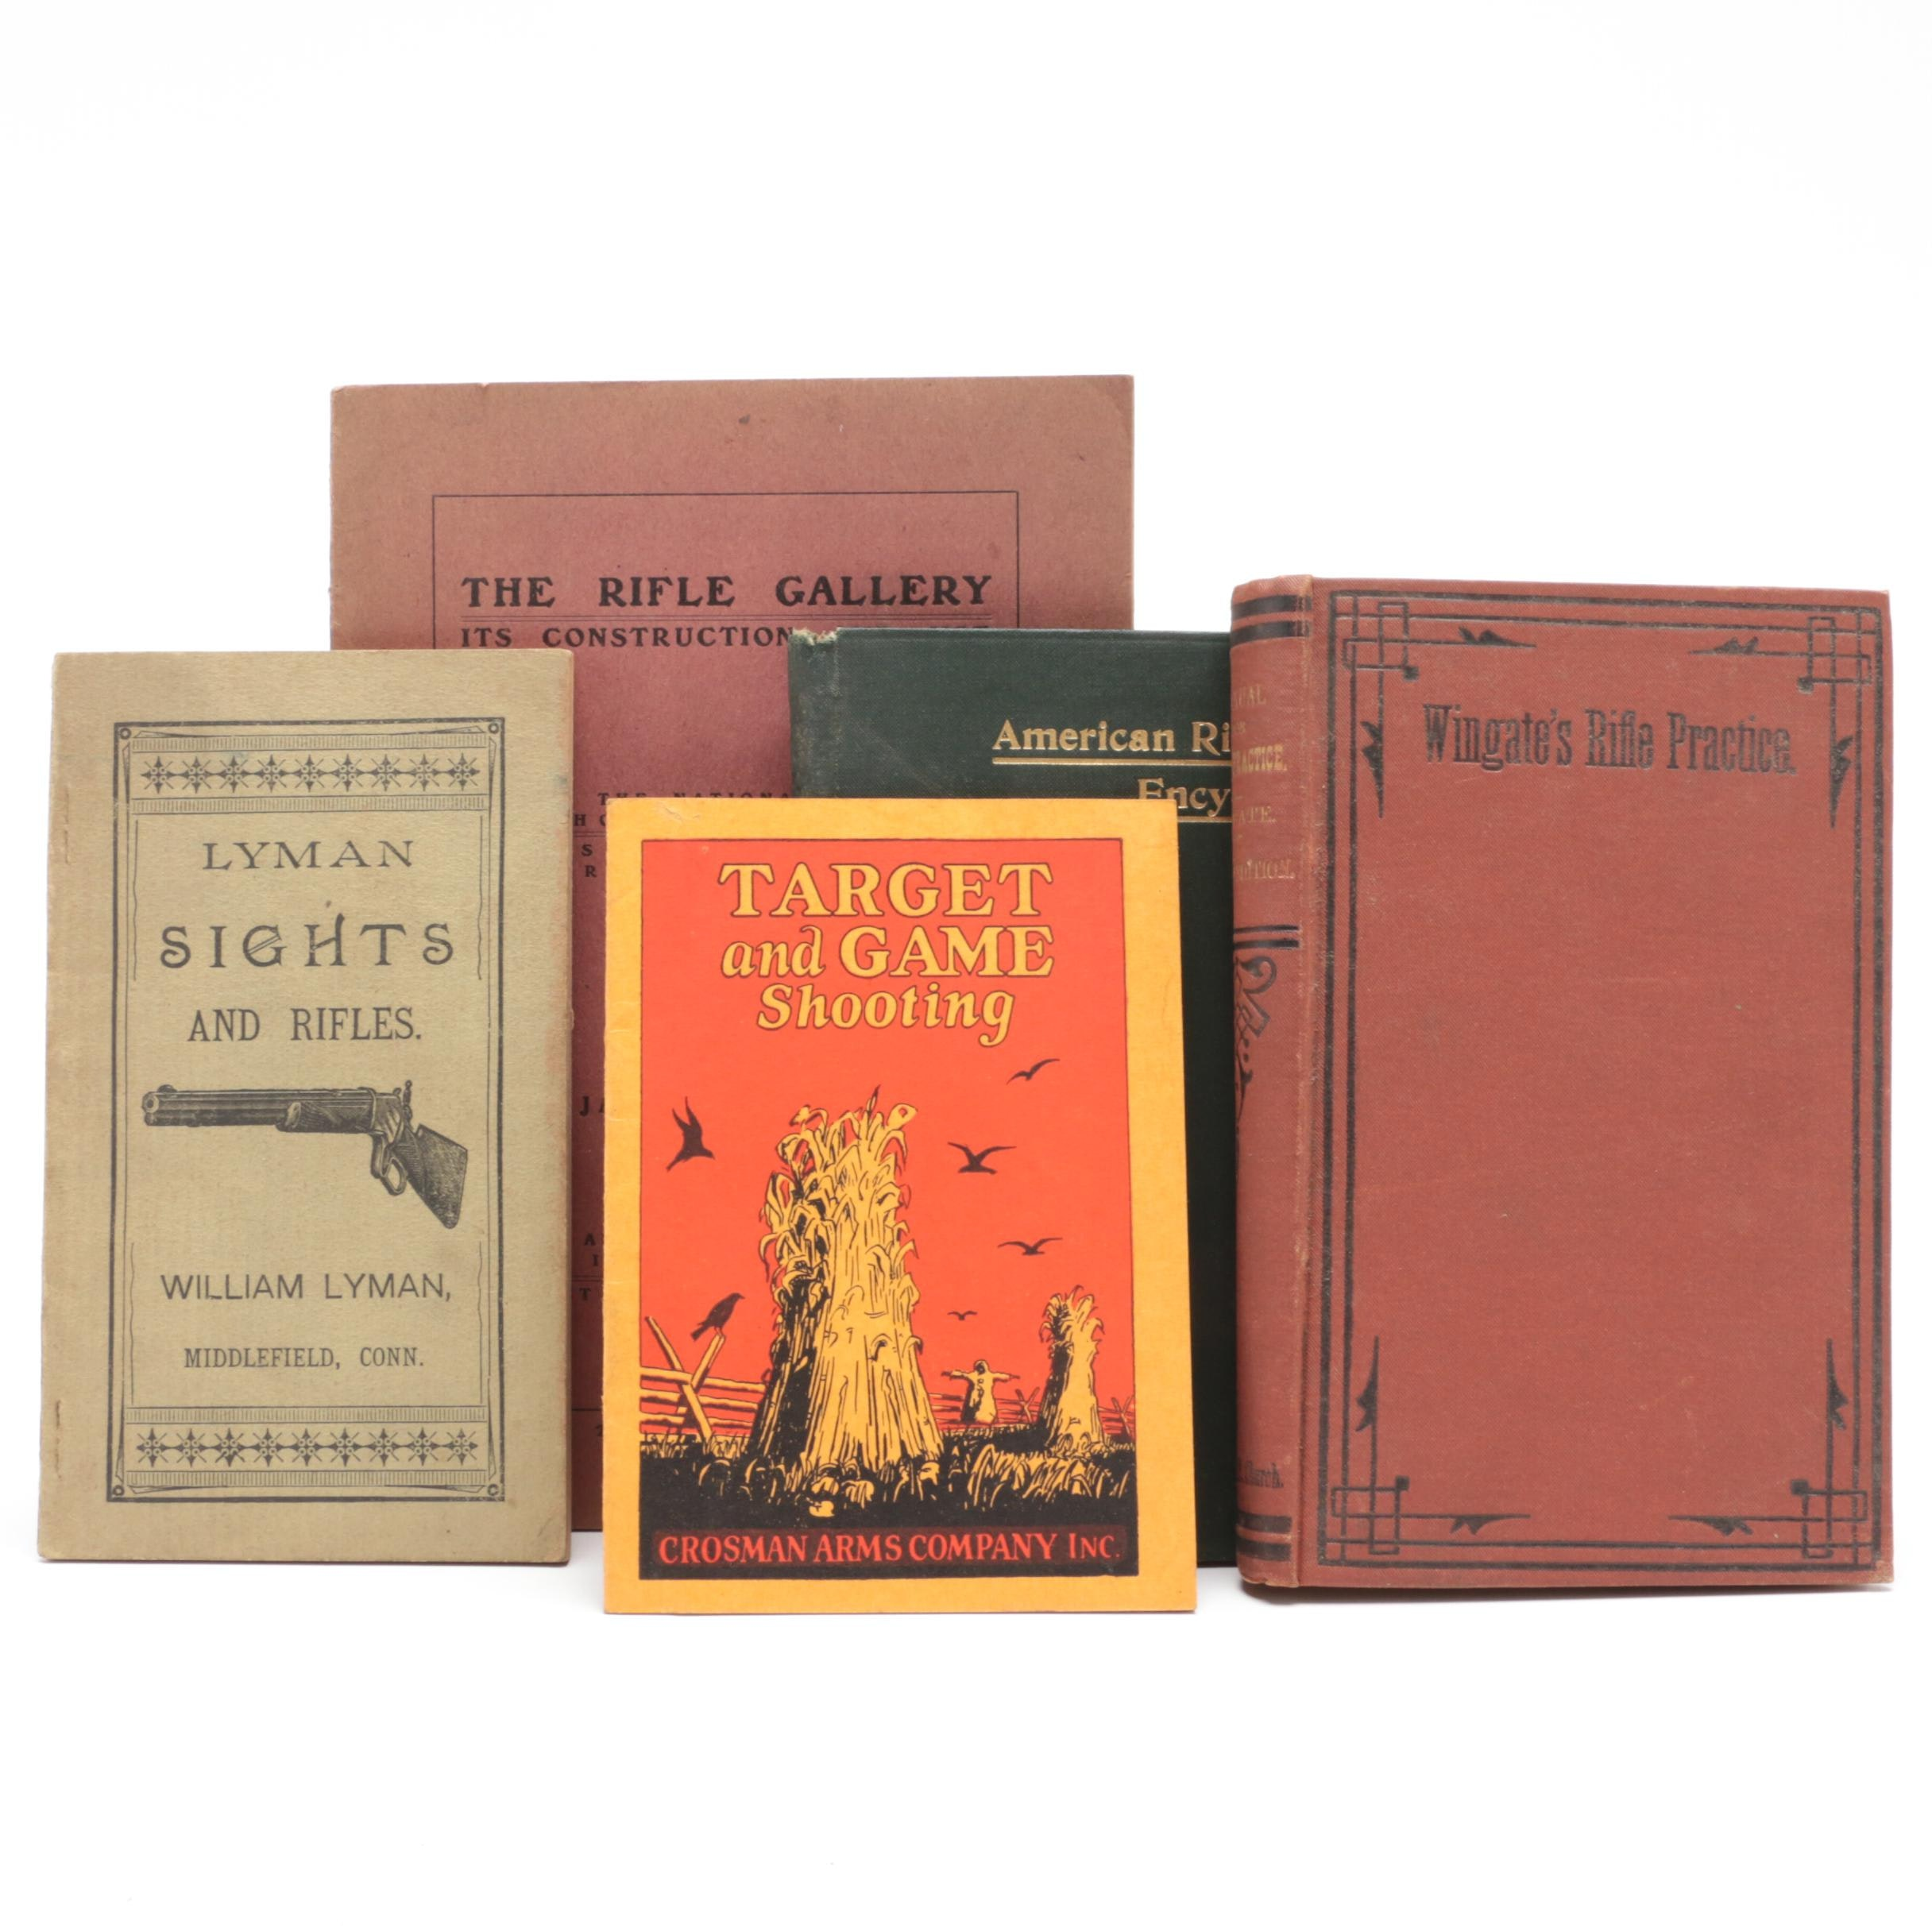 Antique Rifle Instructional Books and Manuals, Circa 1875-1900s